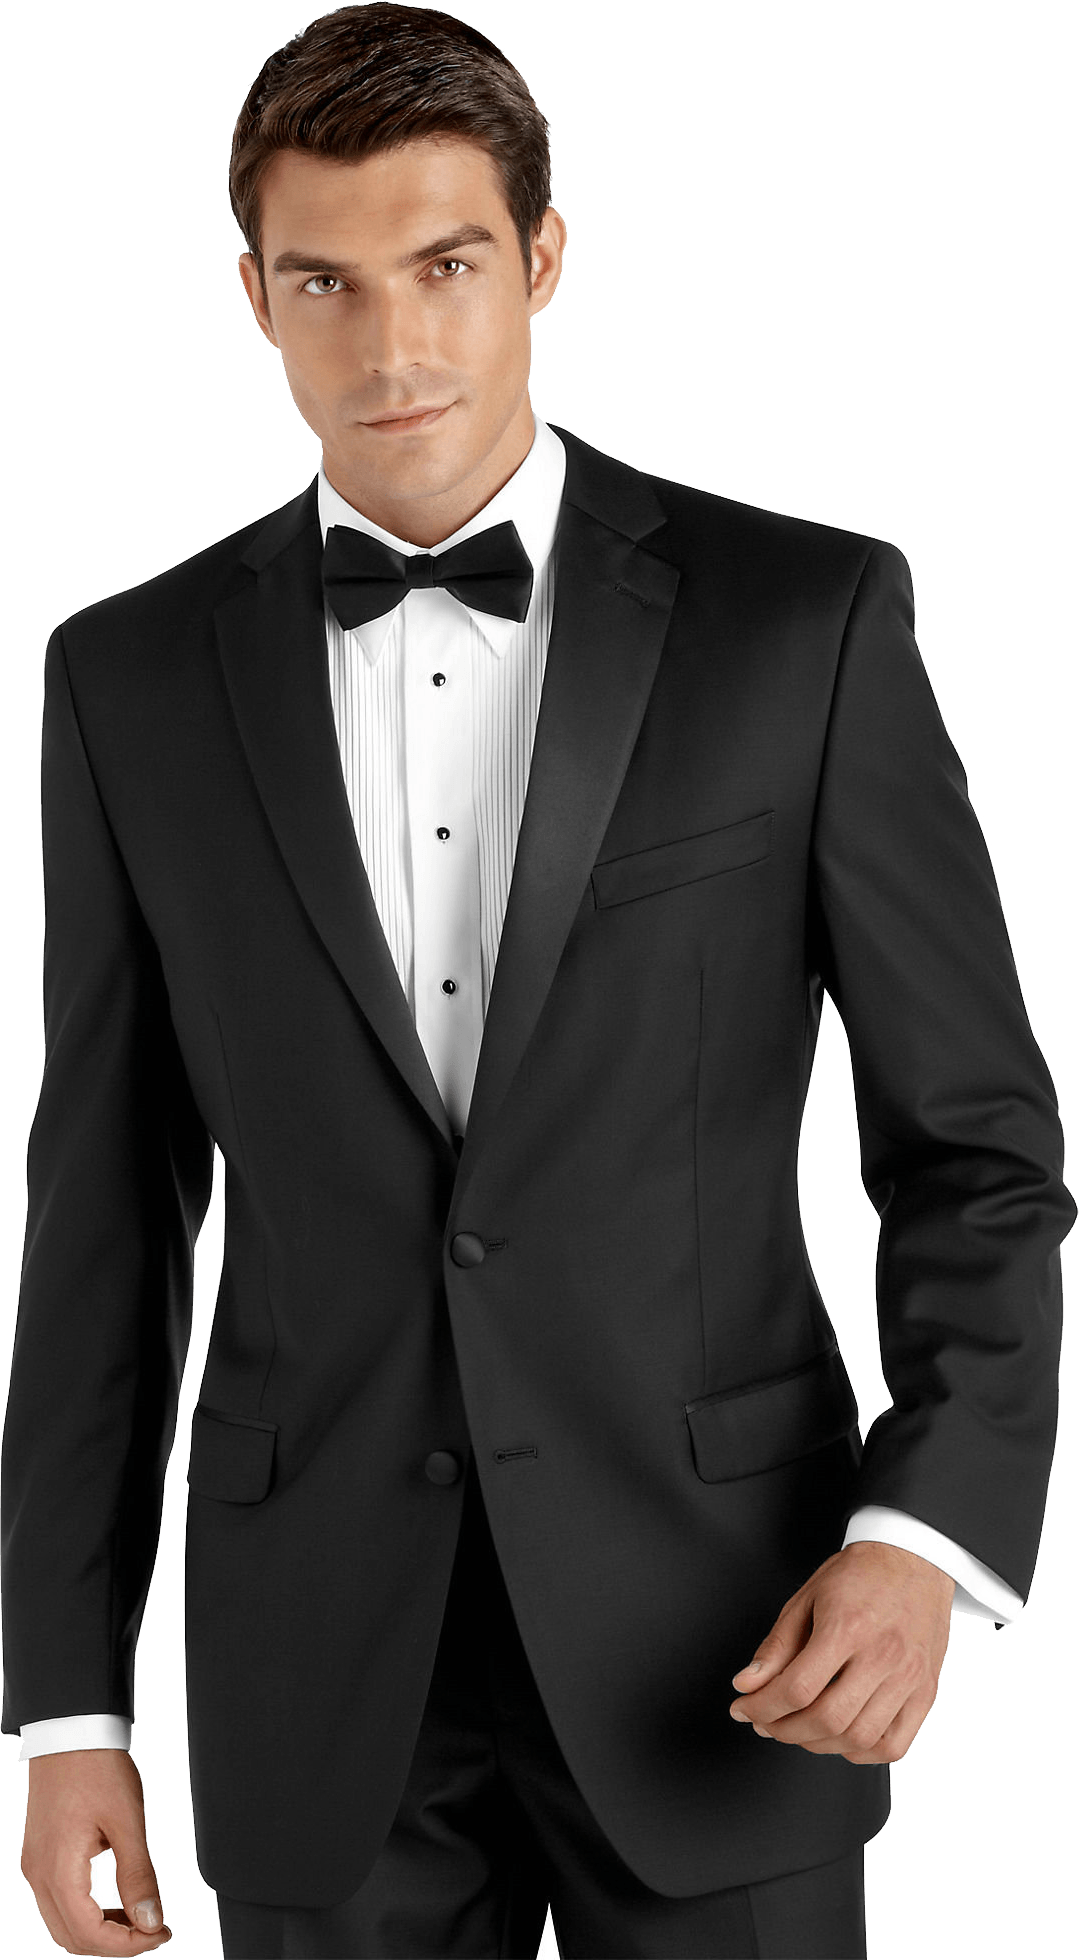 Suit Png Image PNG Image